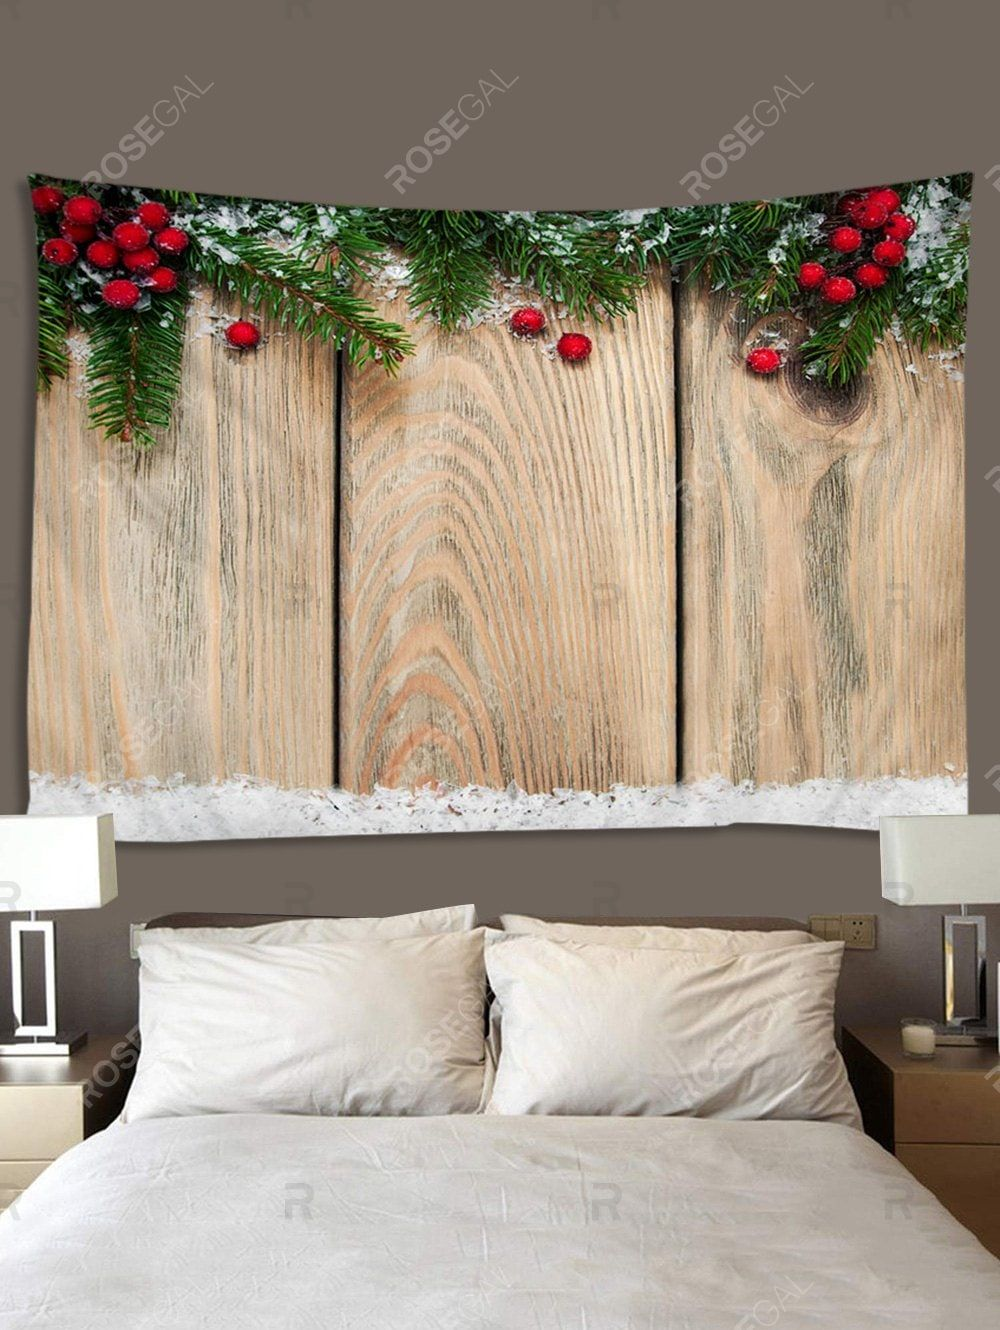 Christmas Branches Berry Wood Grain Print Tapestry Wall Hanging Art Decoration In 2020 Printed Tapestries Tapestry Wall Hanging Christmas Branches